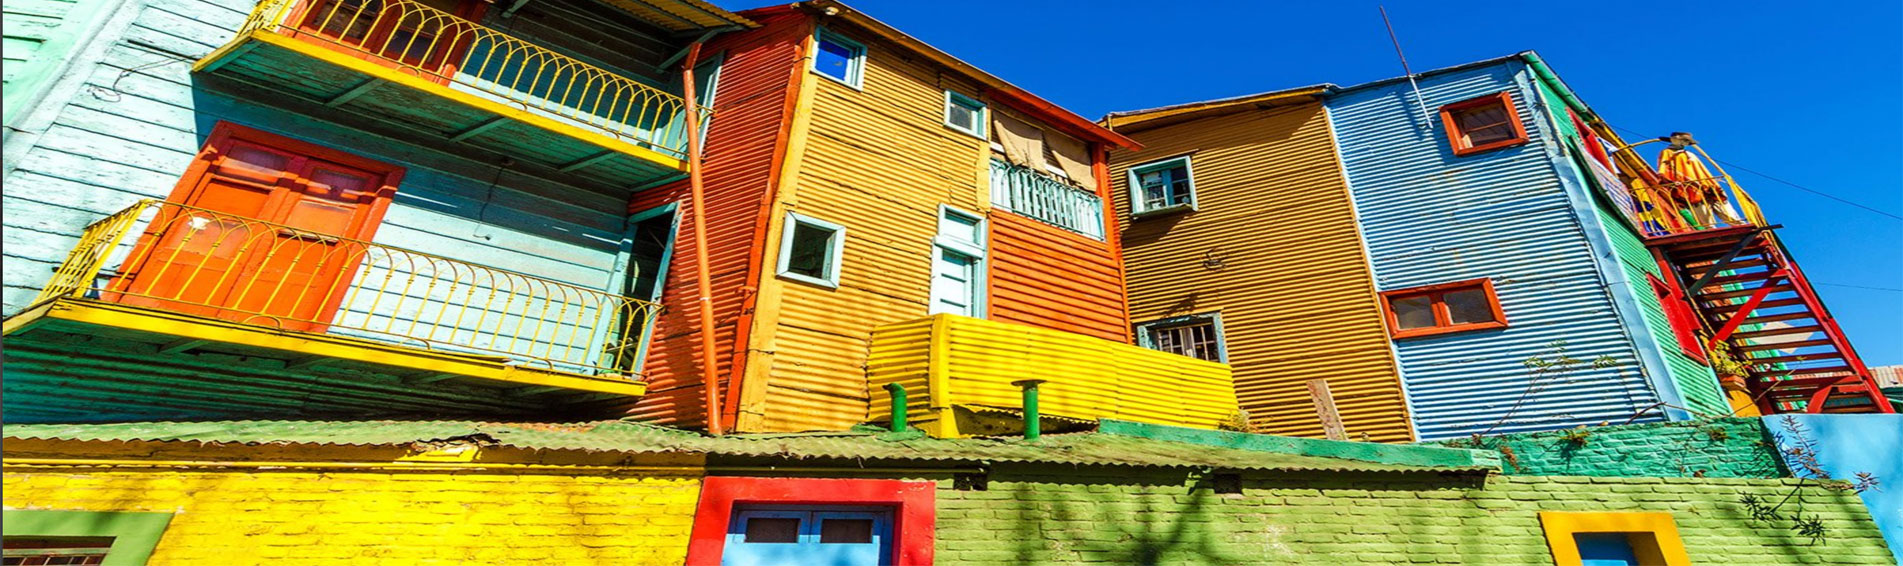 PATAGONIAN DELIGHTS colourful house paint